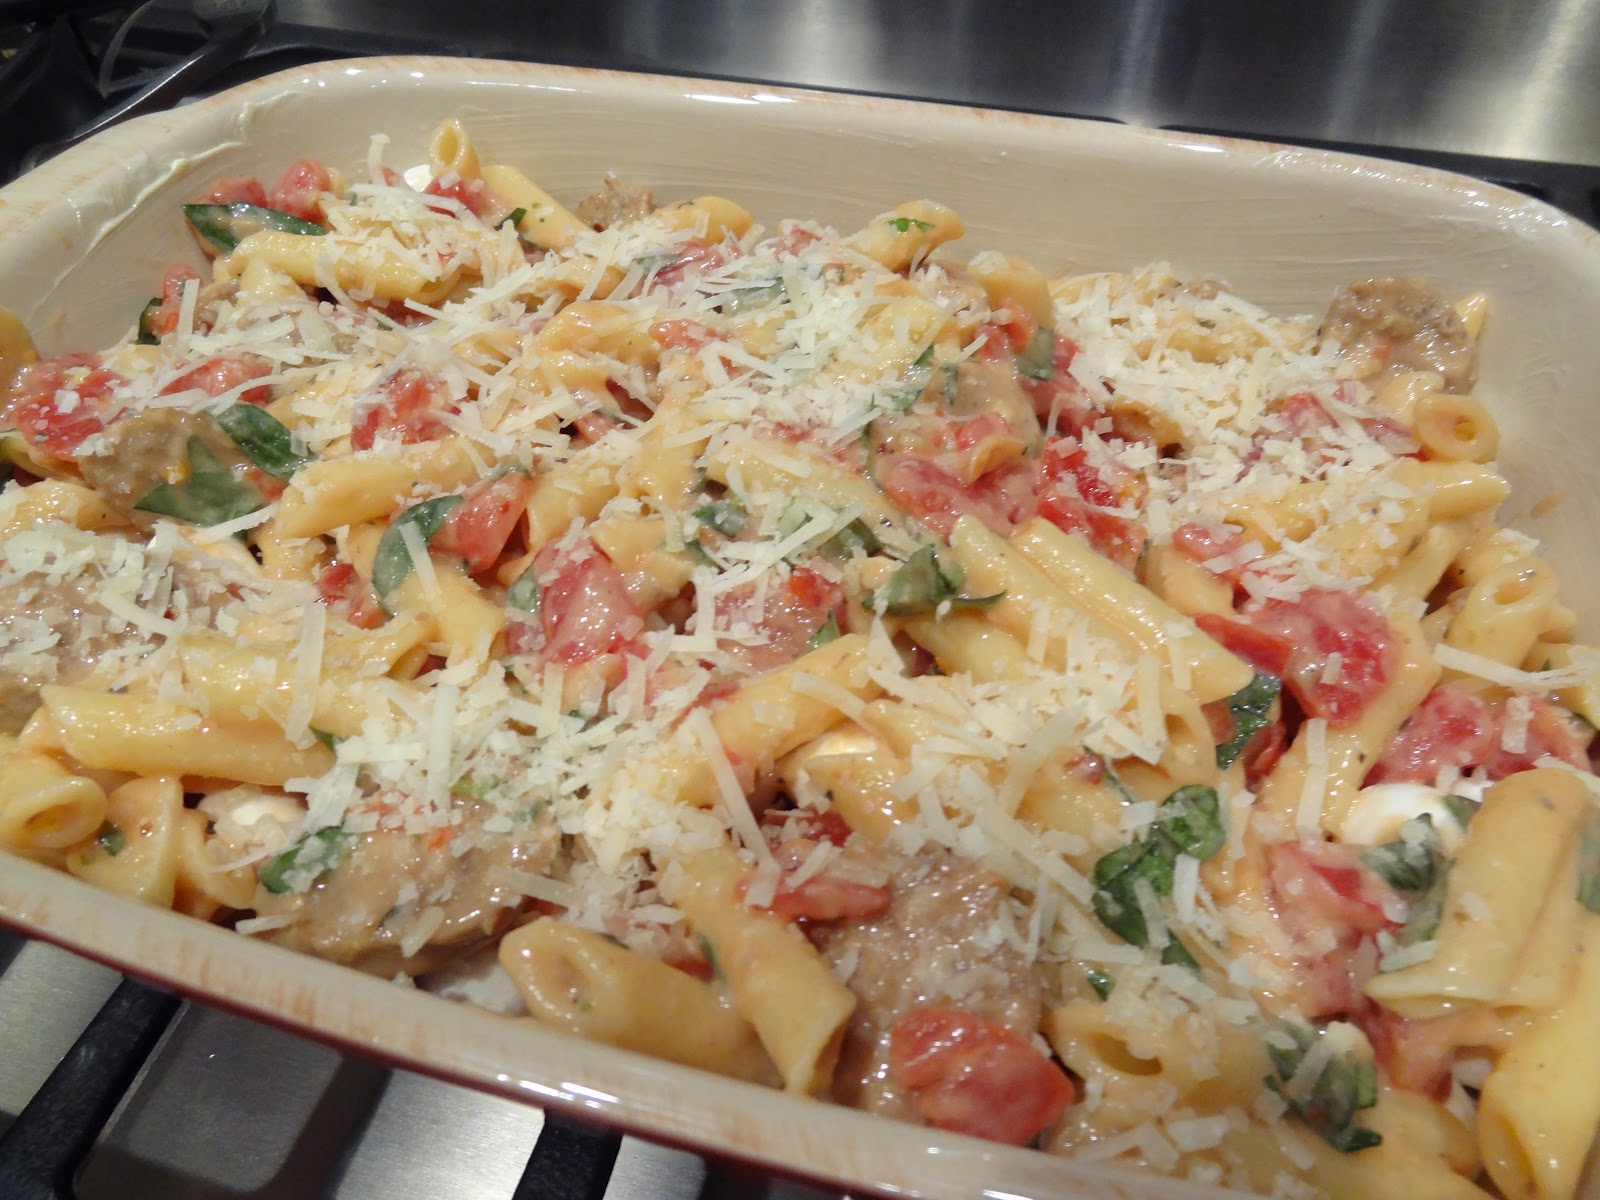 Topp with remaining pasta mixture and sprinkle with Parmigiano ...